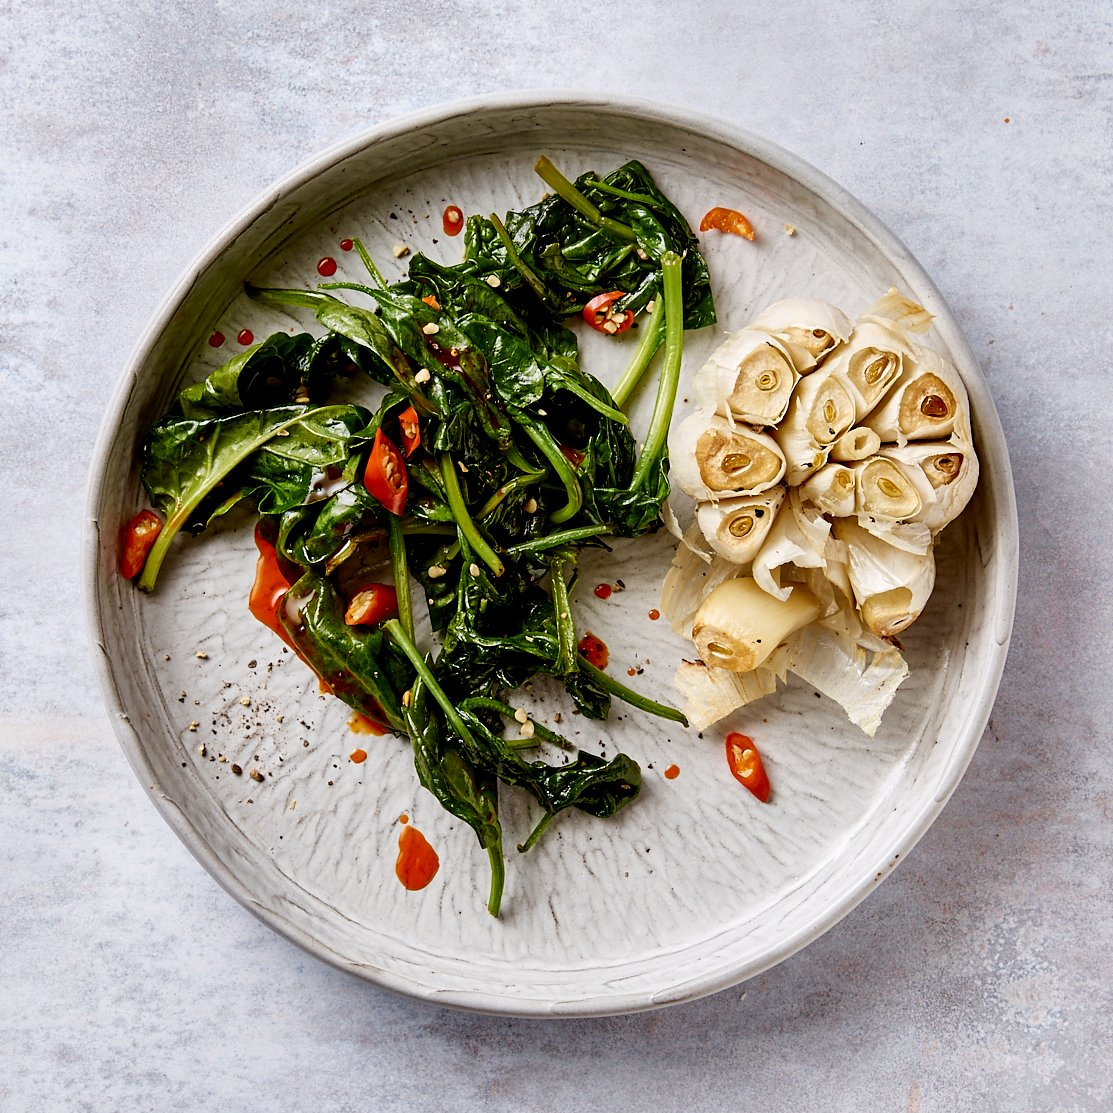 Roasted Garlic-spinach-chilli oil